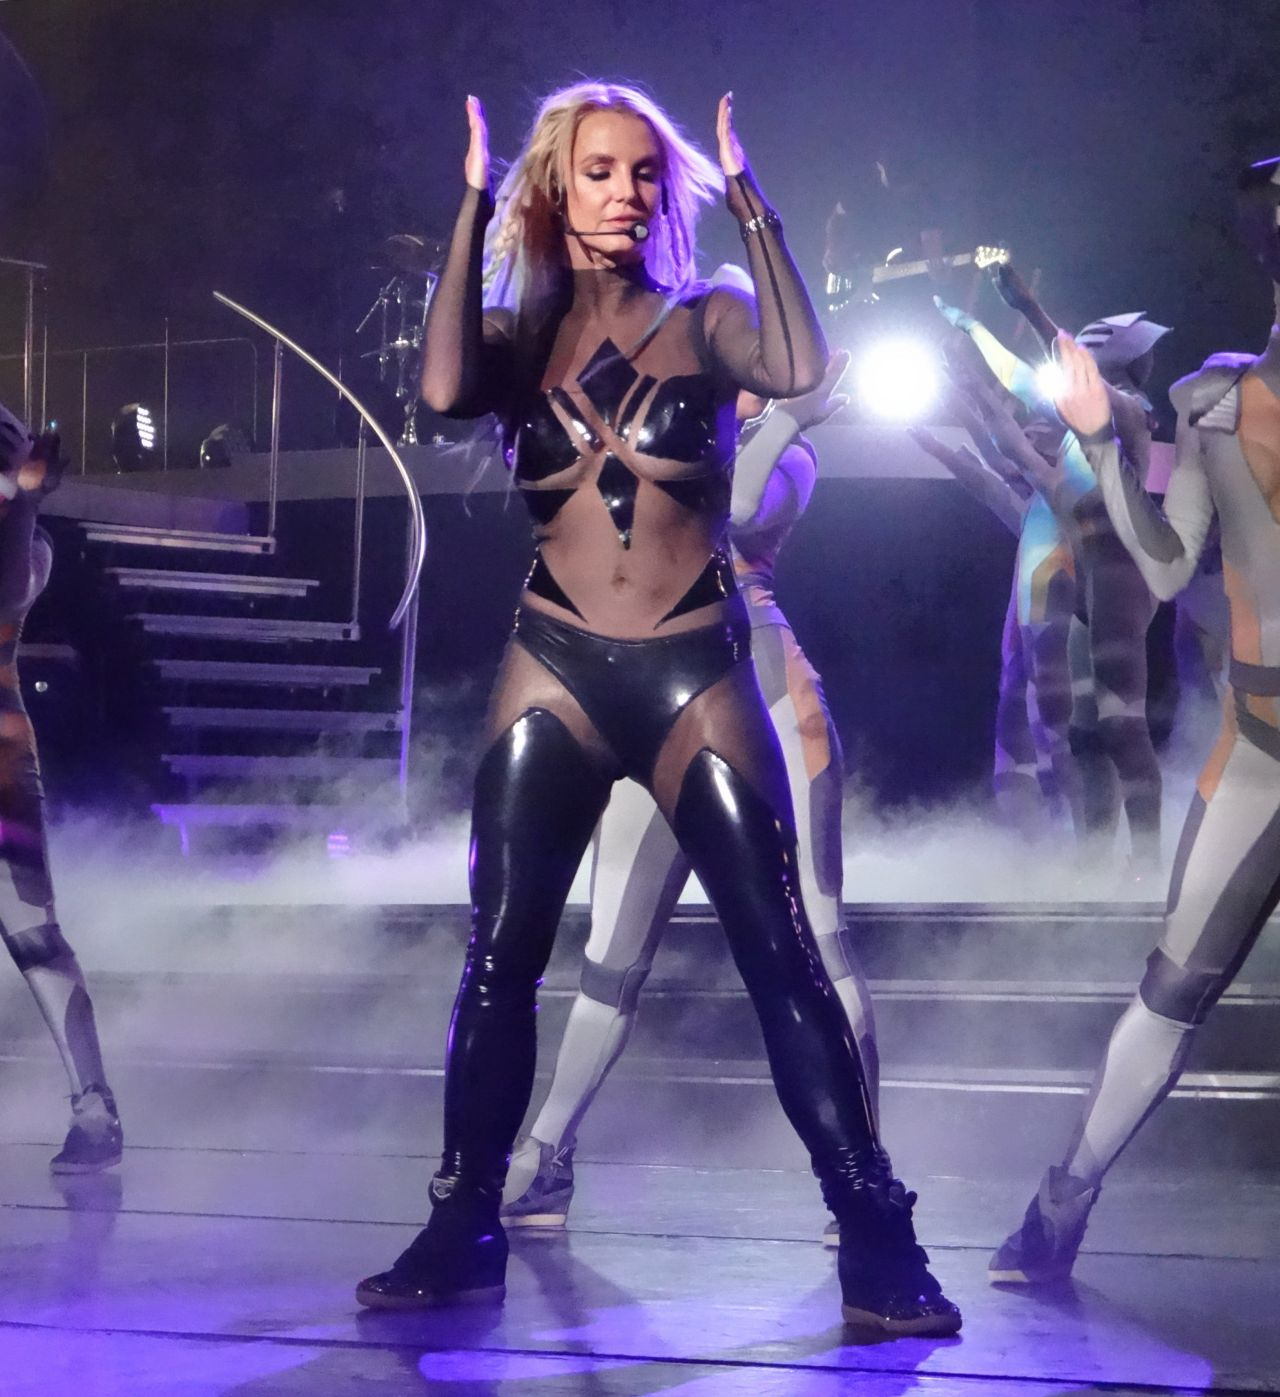 britney_spears_performing_at_planet_holl